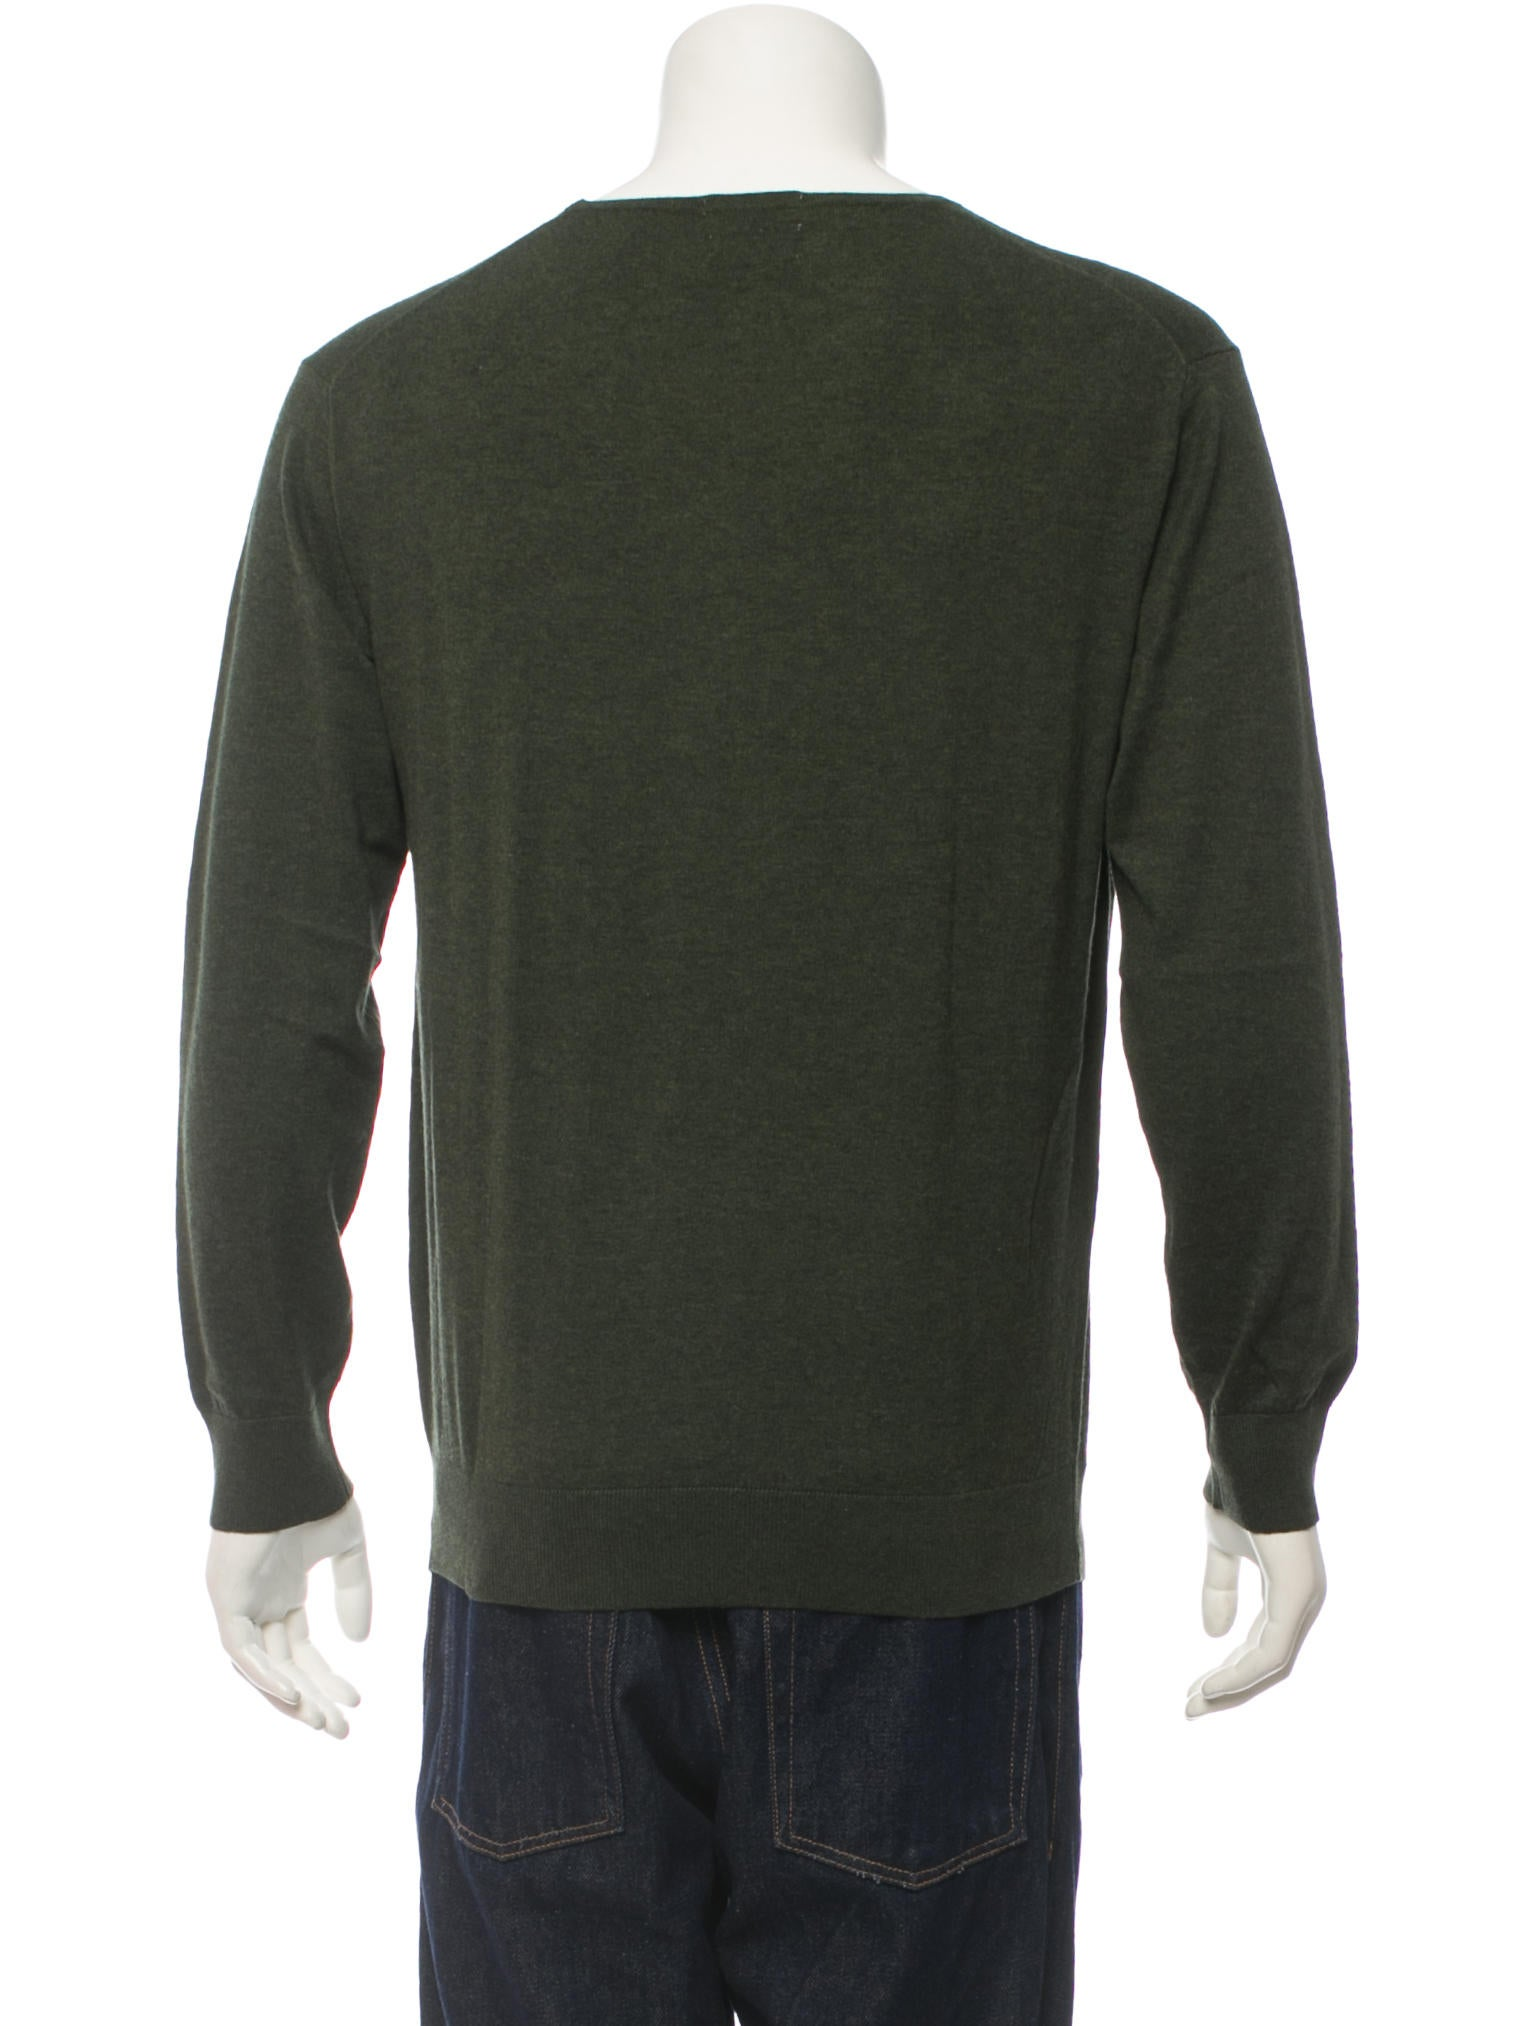 S 90 3 Green Bar Real >> Gant Rugger Sweater w/ Tags - Clothing - GRG20217 | The RealReal